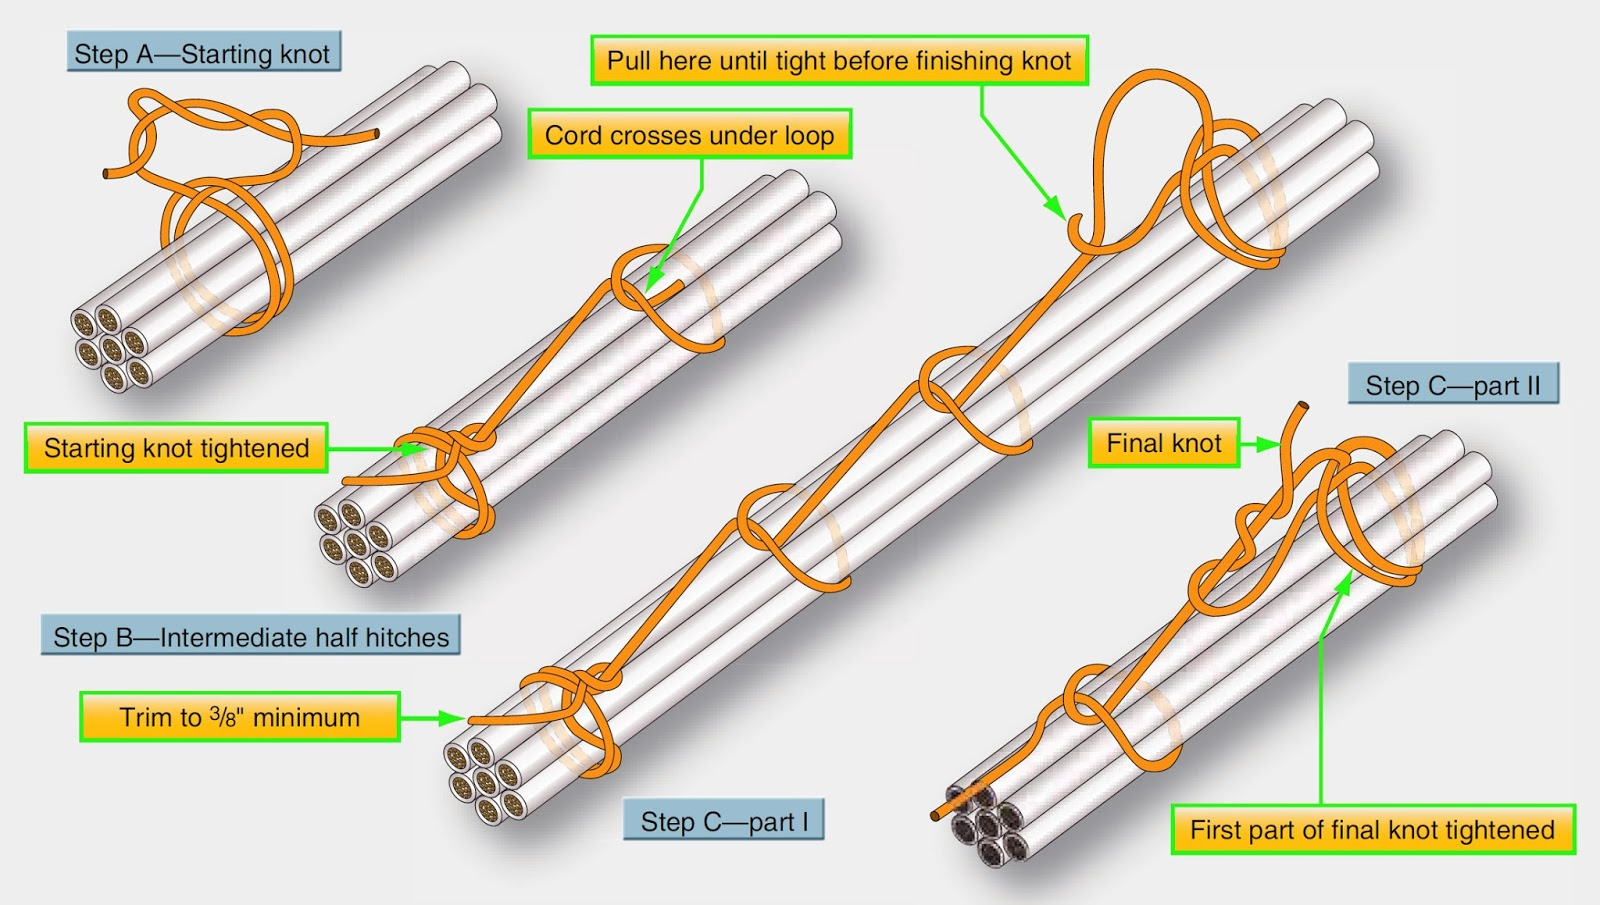 Aircraft systems: Lacing and Tying Wire Bundles